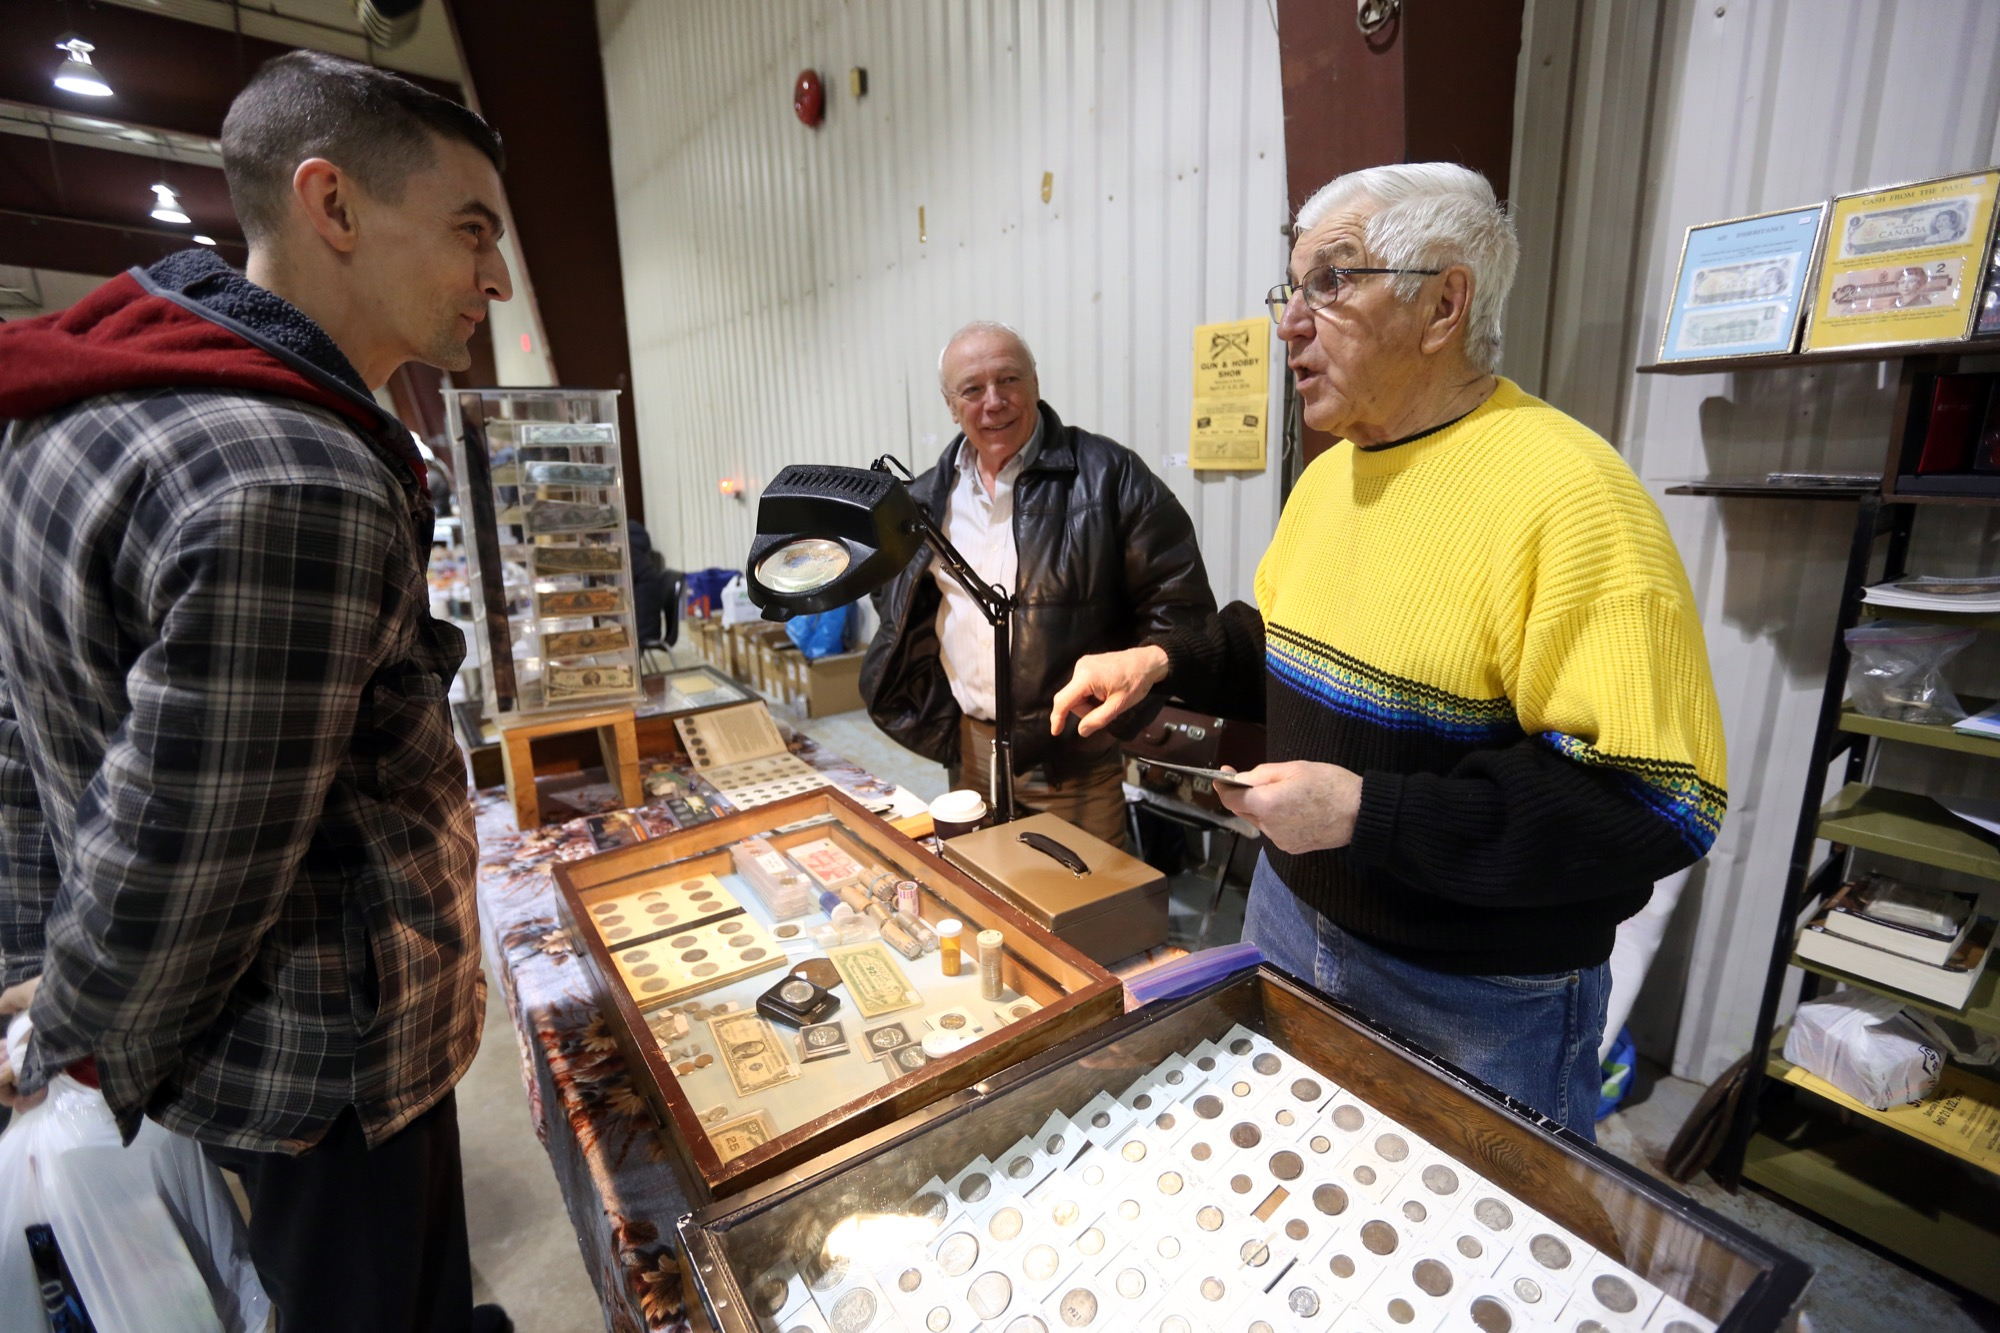 Terry Wozney, left, a private coin collector from Dauphin, chats with a fellow garage sale attendee Saturday in the Manitoba Room of the Keystone Centre.